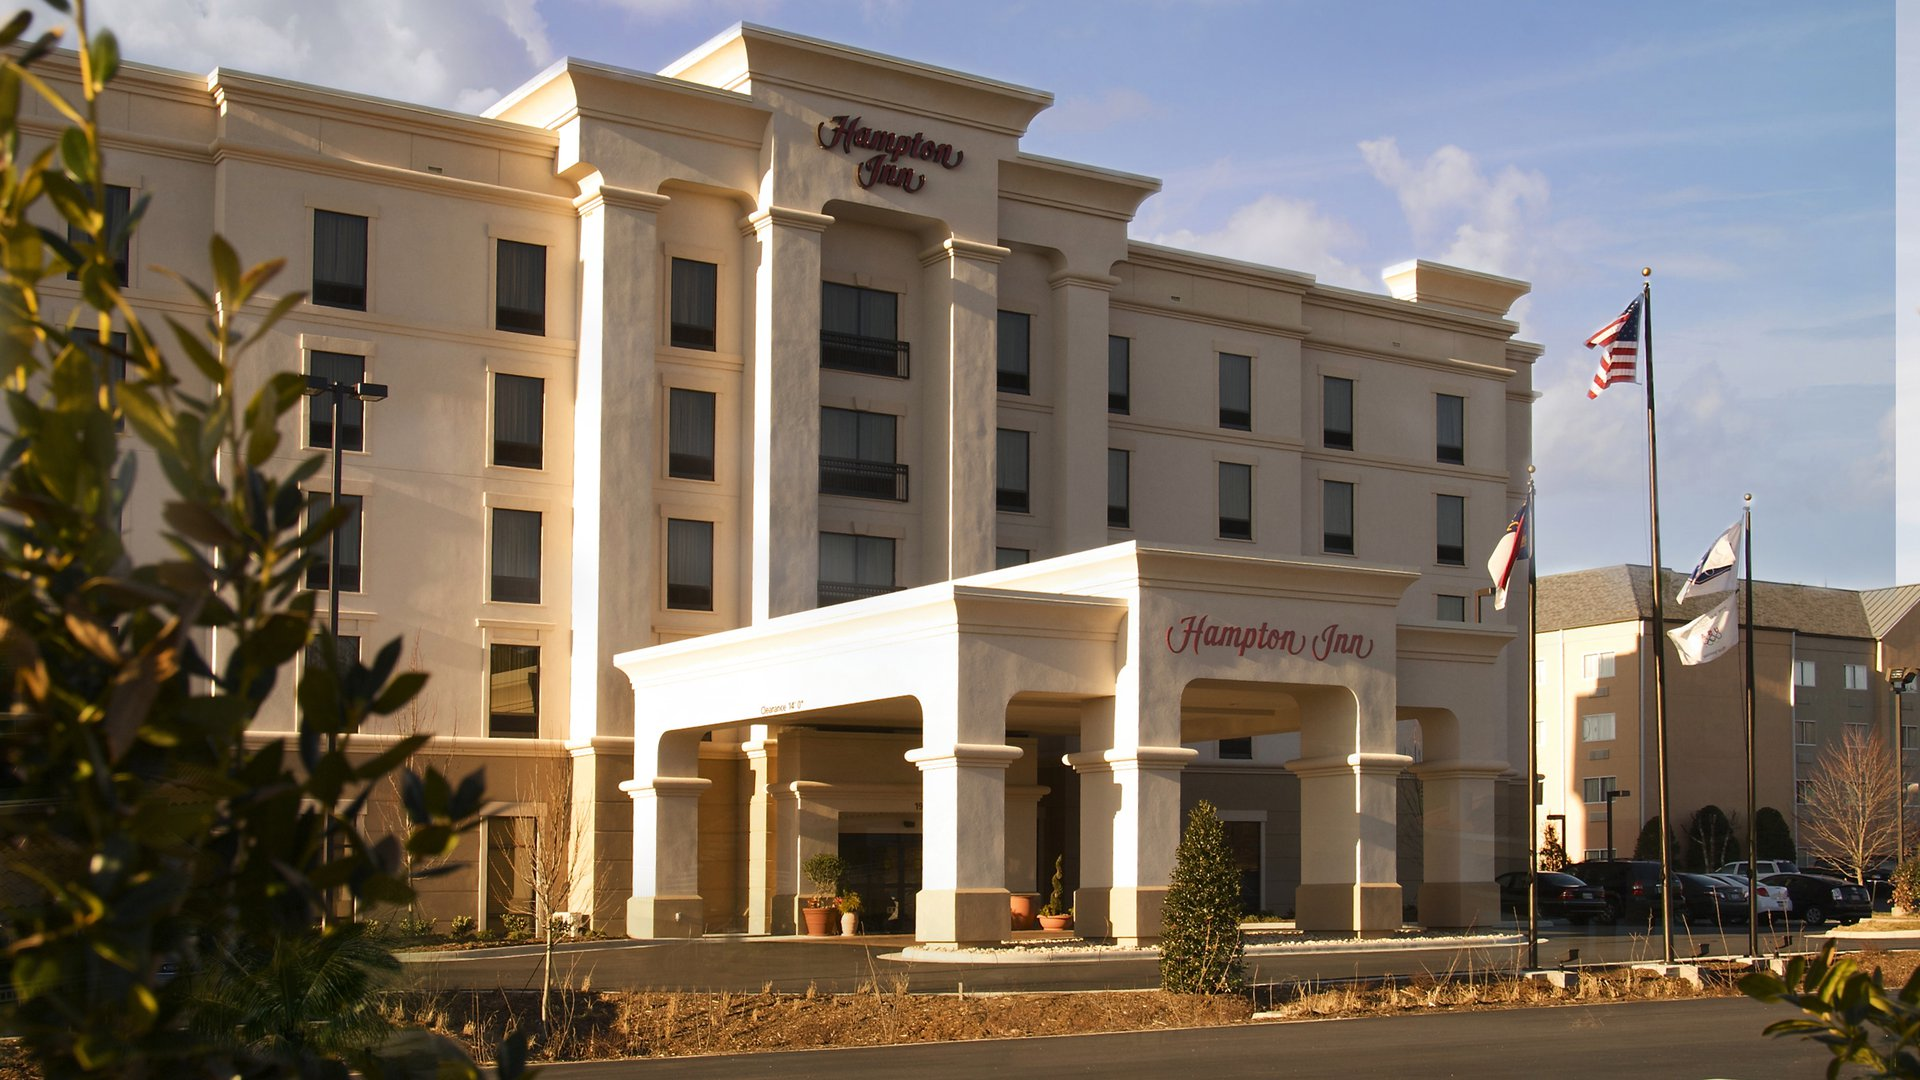 Hampton Inn Hickory front